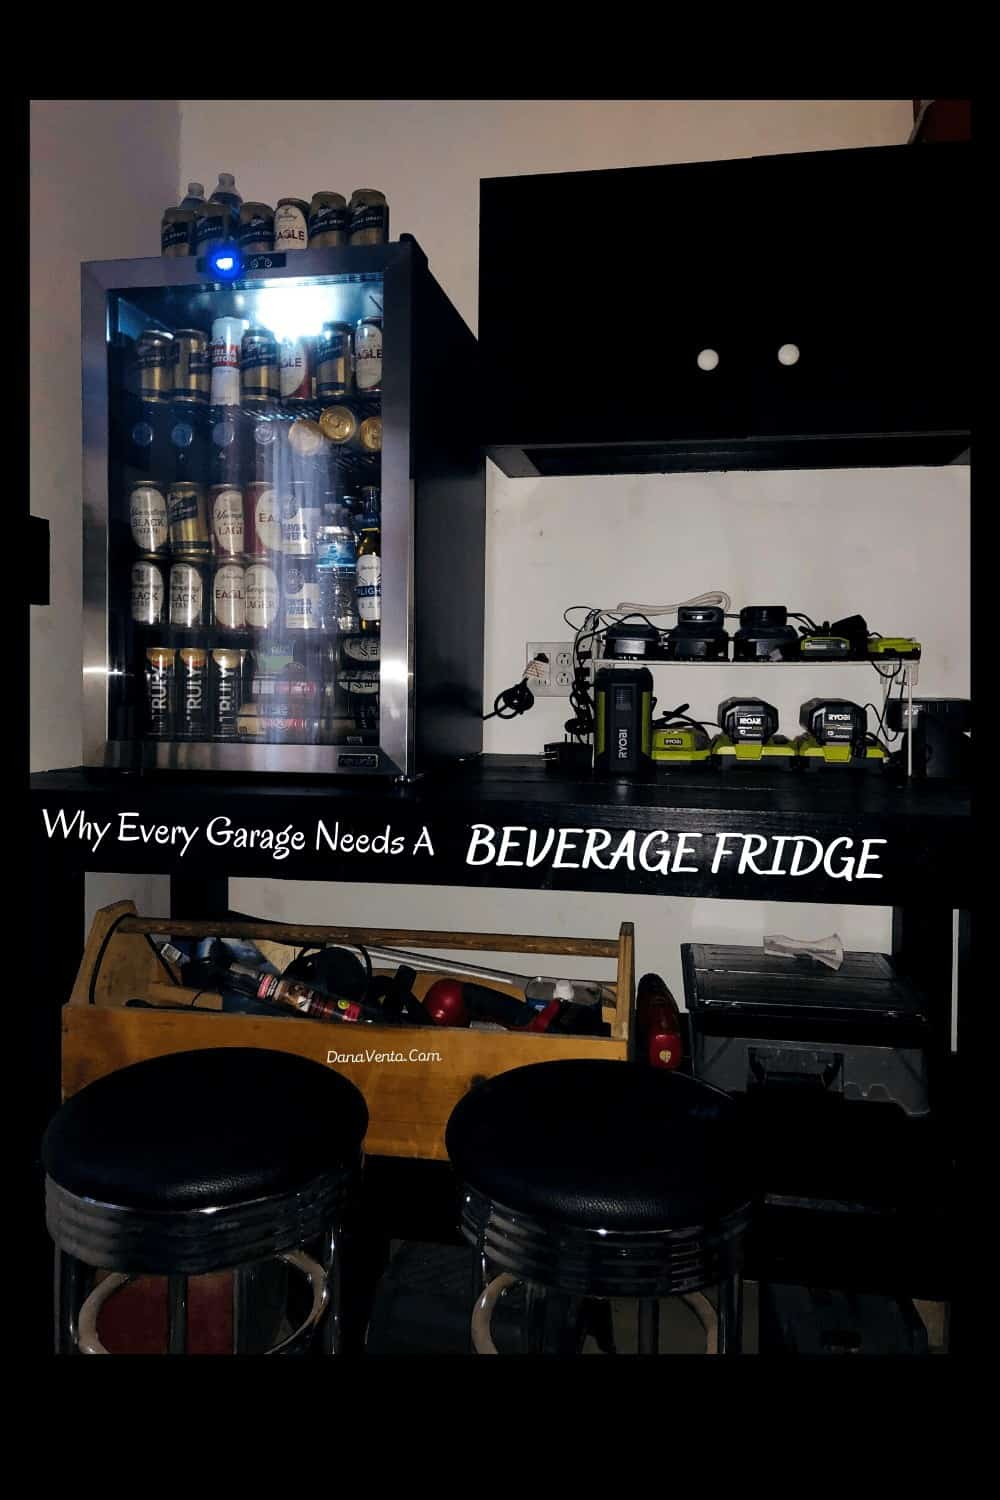 beverage fridge from NewAir with LED light on interior